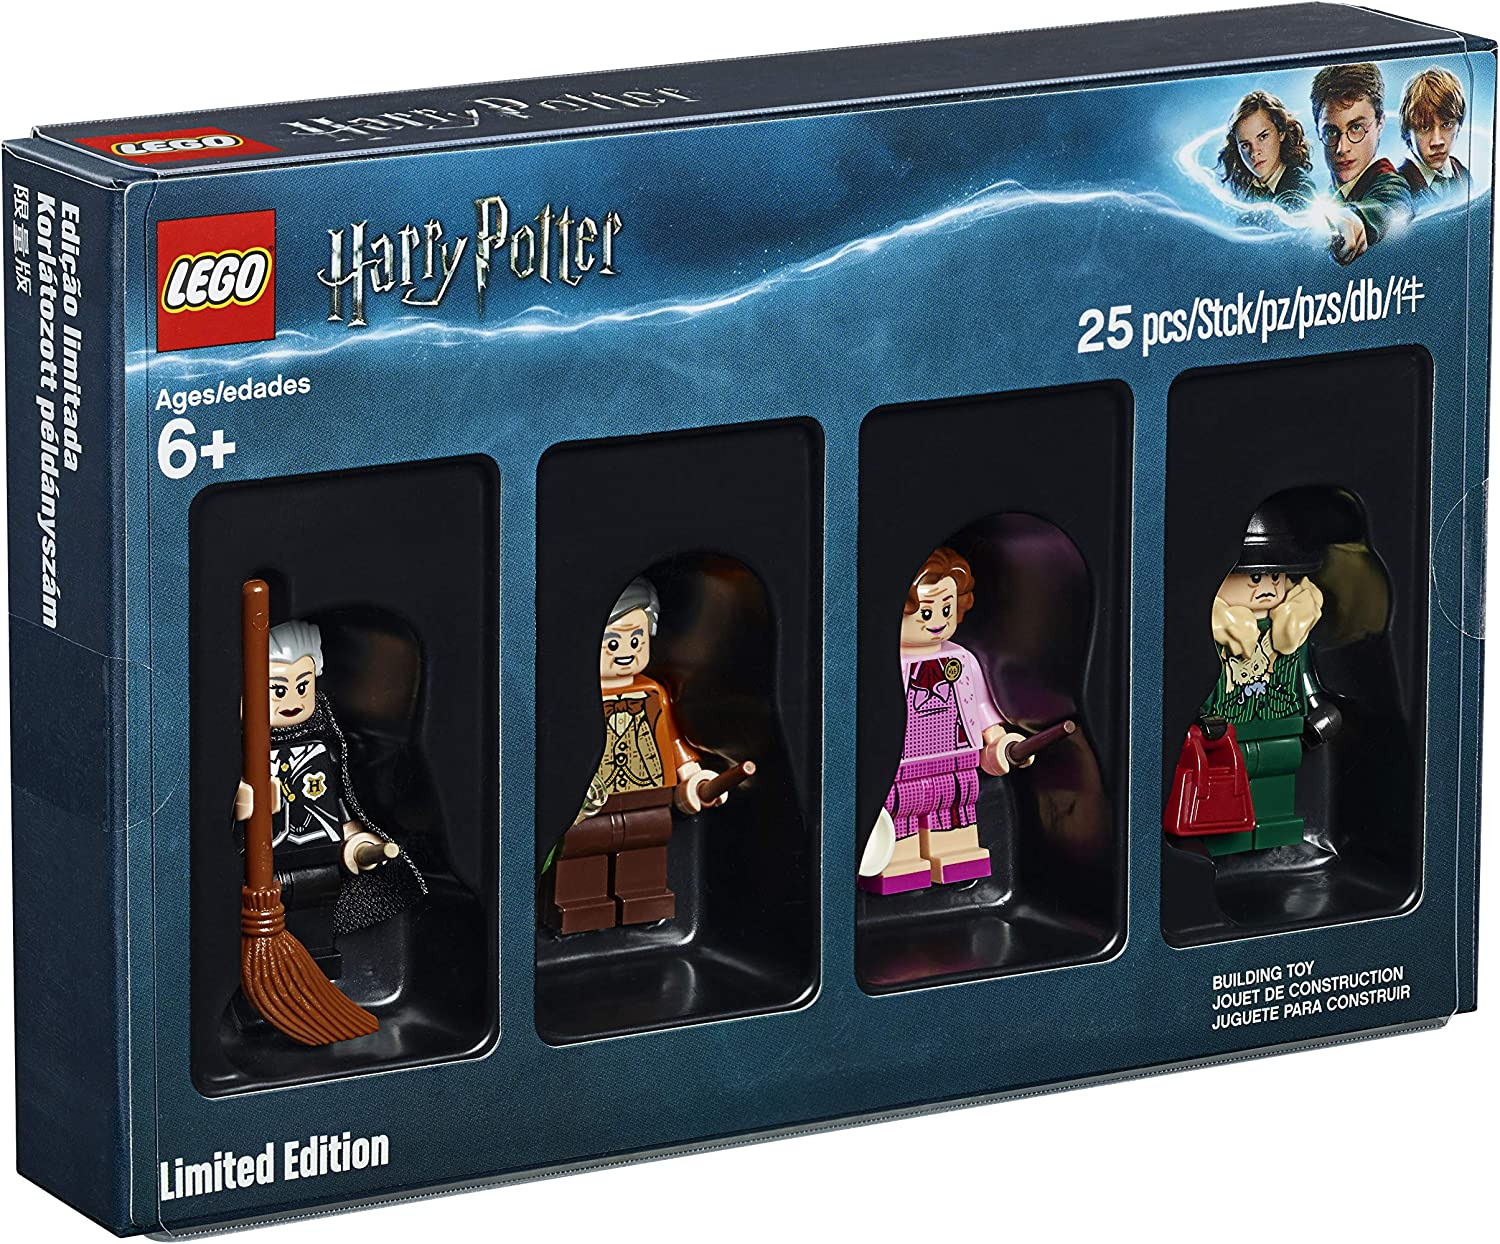 Lego 2018 Bricktober Harry Potter Minifigure Set Toys Games